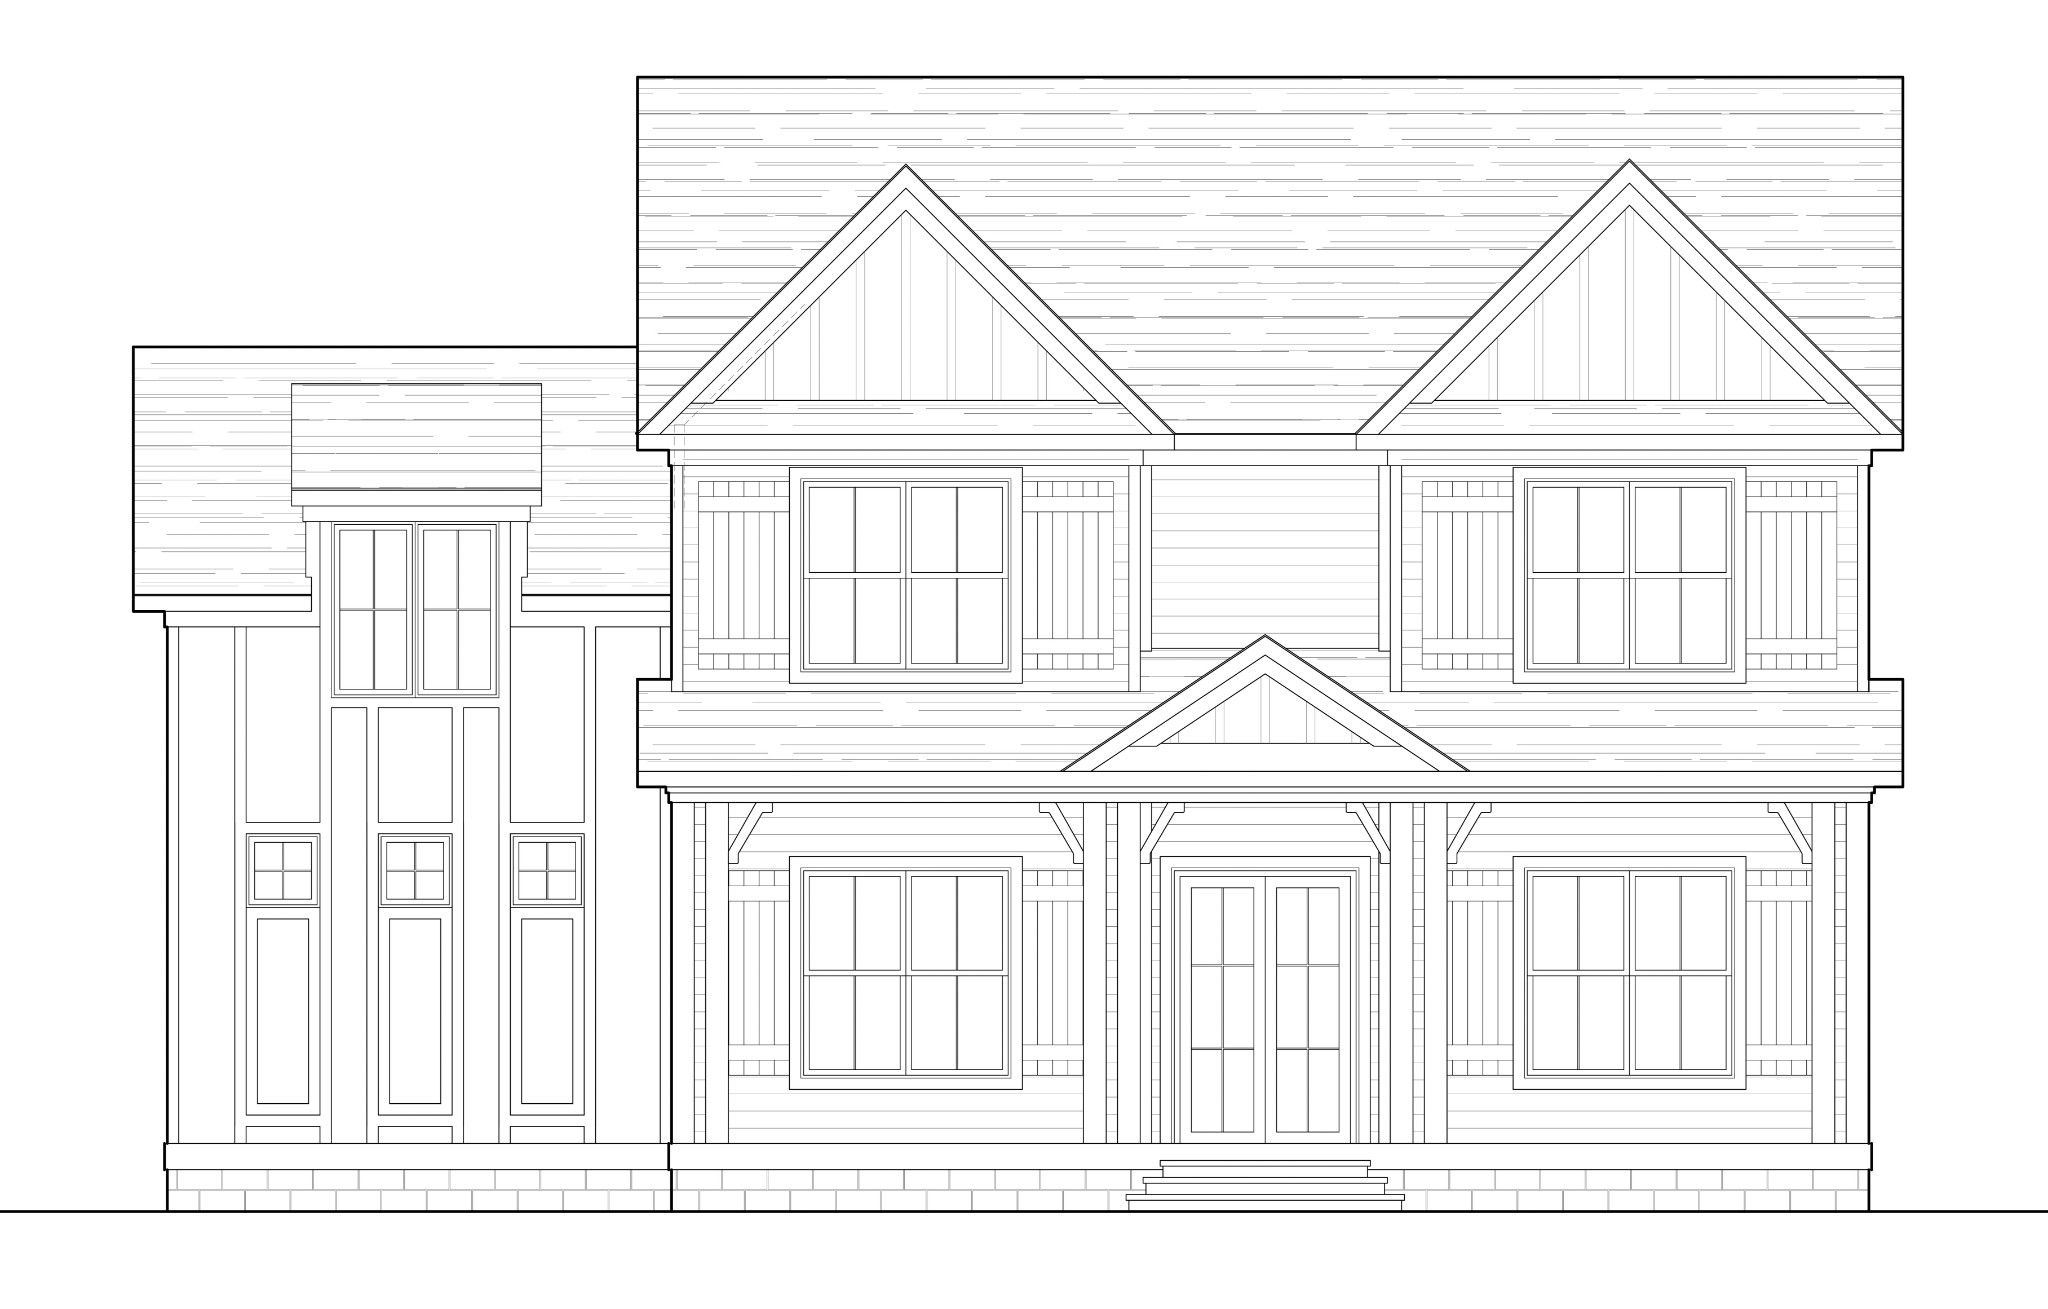 NEW CONSTRUCTION IN SYLVAN PARK! GET IN EARLY TO MAKE YOUR SELECTIONS NOW! ~4 BEDS, 4 FULL BATHS, 1 HALF BATH~2 CAR REAR GARAGE~SPACIOUS KITCHEN WITH BUTLERS PANTRY CONNECTING TO DINING ROOM~OFFICE~FAMILY ROOM OPEN TO KITCHEN~MUDROOM/LAUNDRY W/ SINK~MASTER SUITE ON MAIN FLOOR~BONUS ROOM~UPSTAIRS FLEX SPACE/LOFT~COVERED FRONT AND REAR PORCHES~WOOD BURNING FIREPLACE ON REAR PORCH~HUGE BACKYARD~TOP OF THE LINE DESIGNER FINISHES THROUGHOUT!